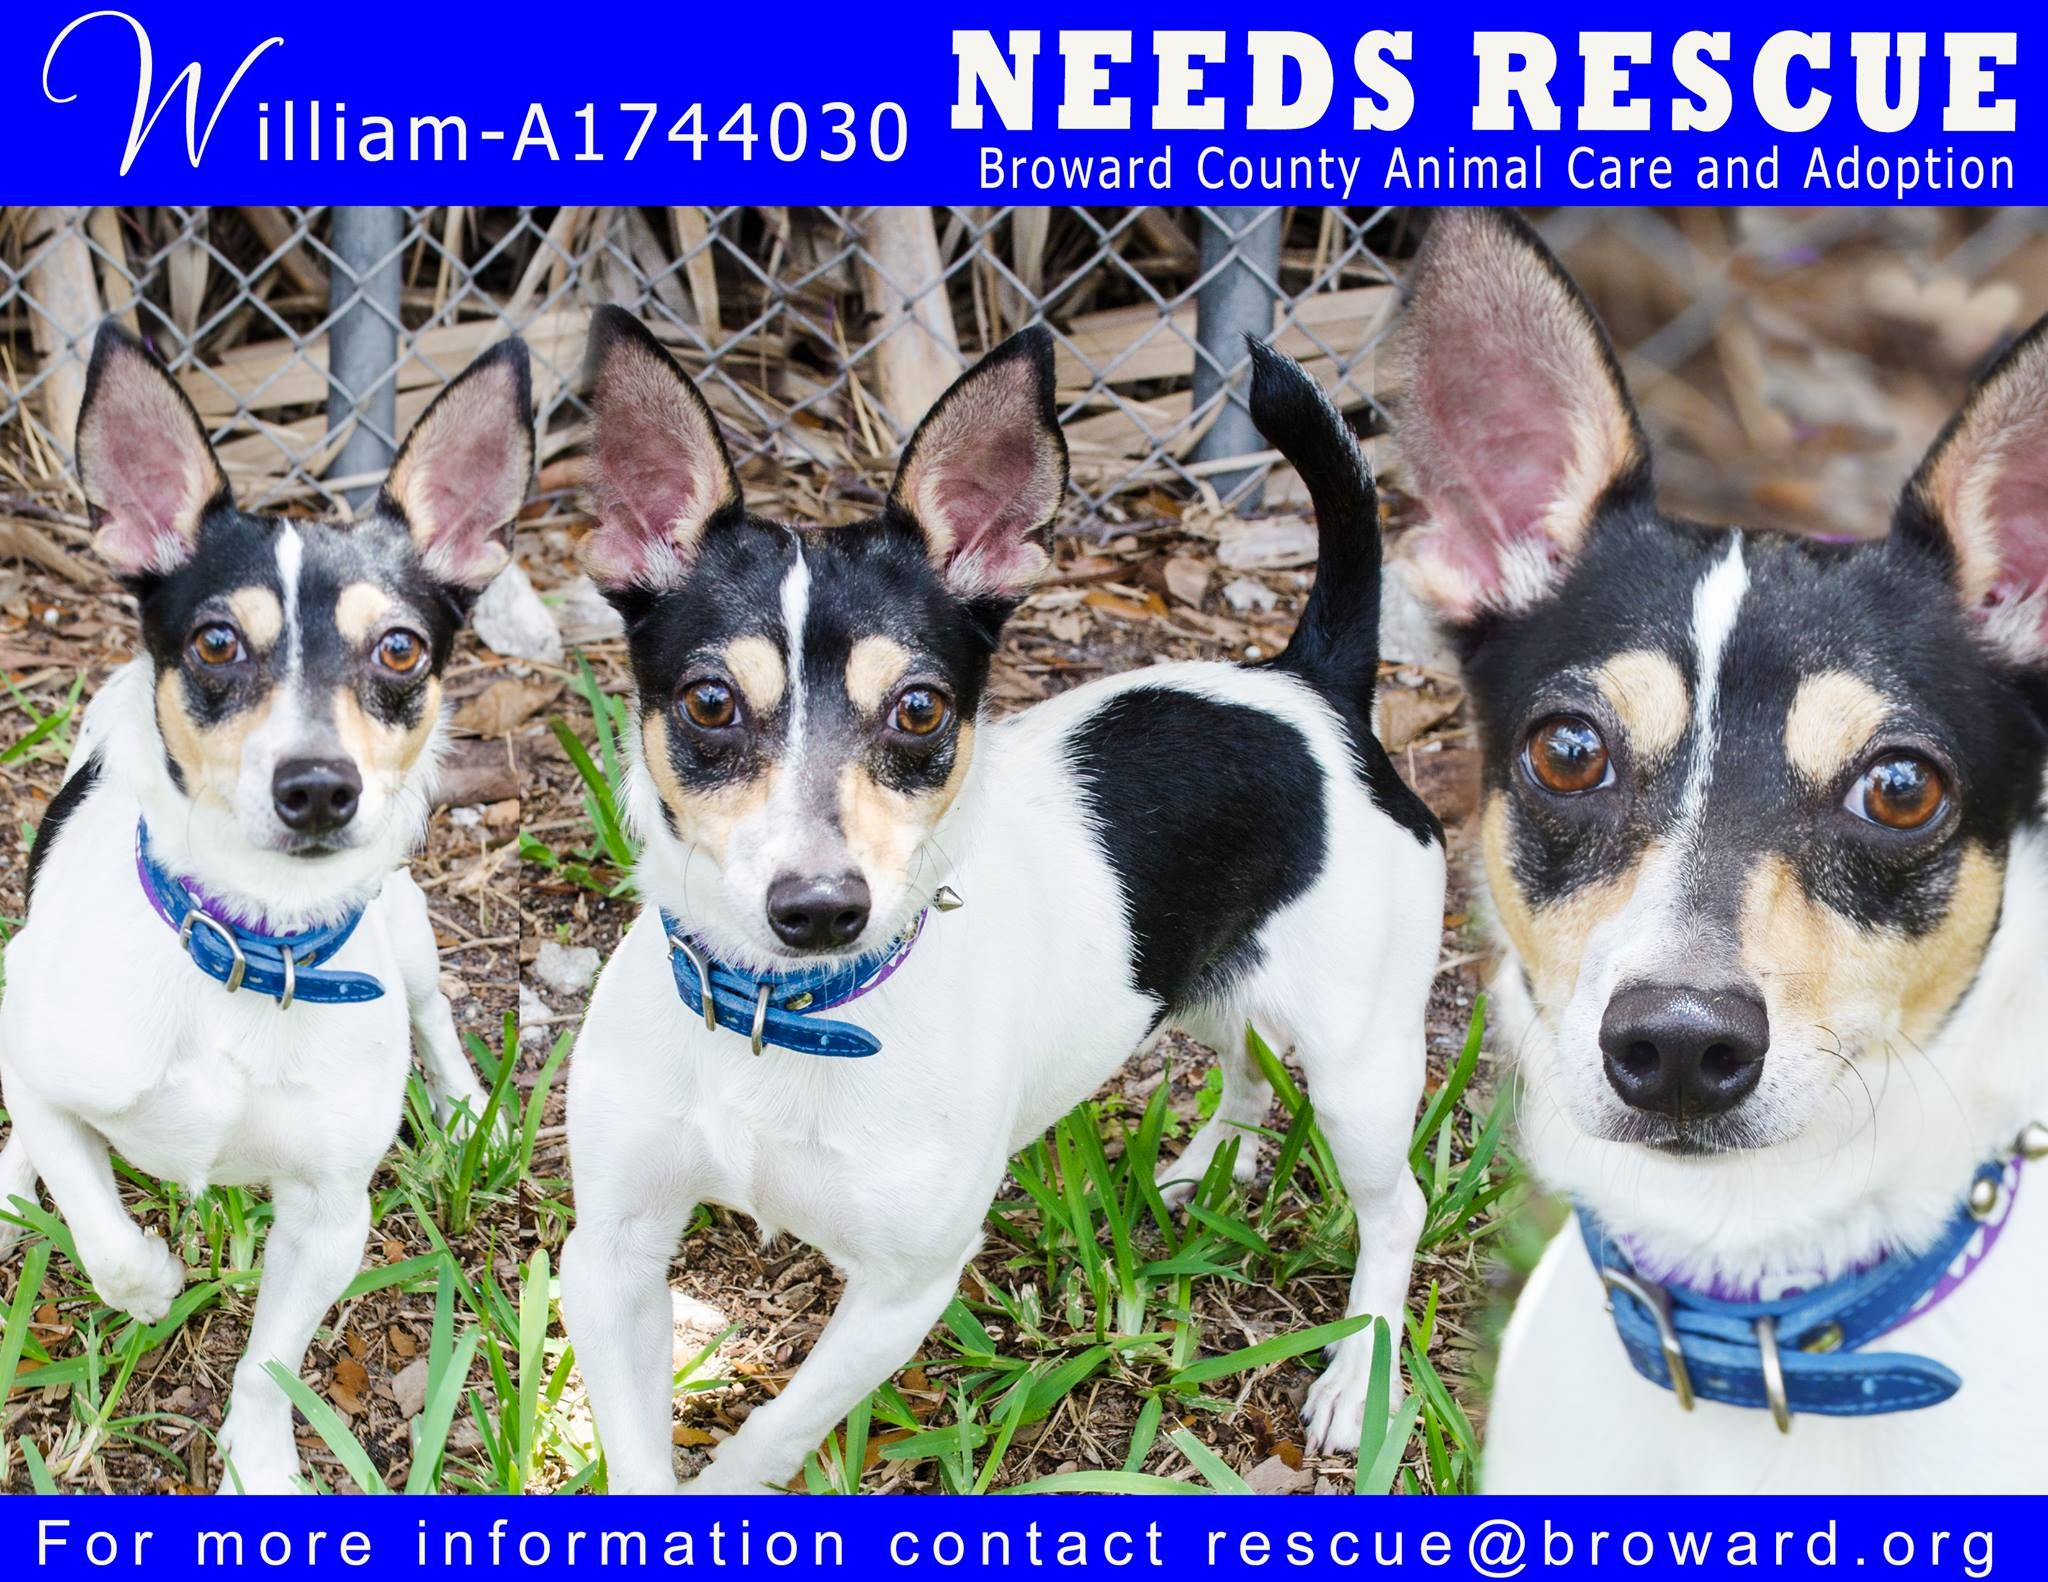 Urgent dogs of broward animal care and adoption page liked